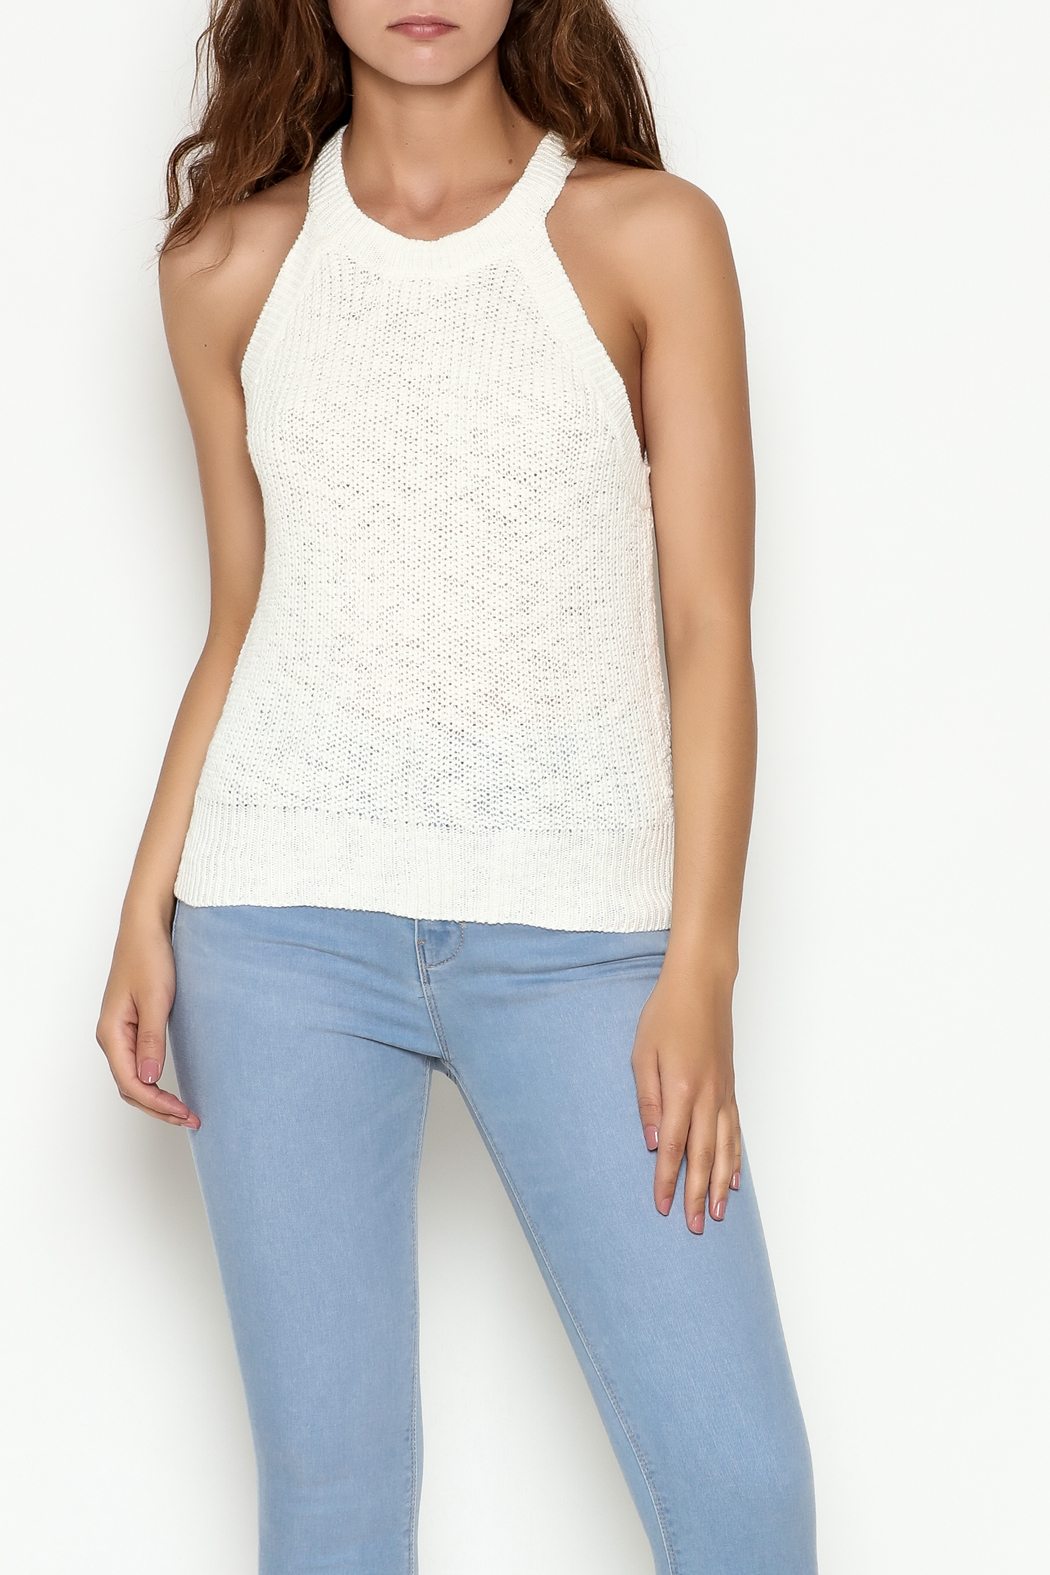 Olive & Oak Cropped White Sweater Tank - Main Image